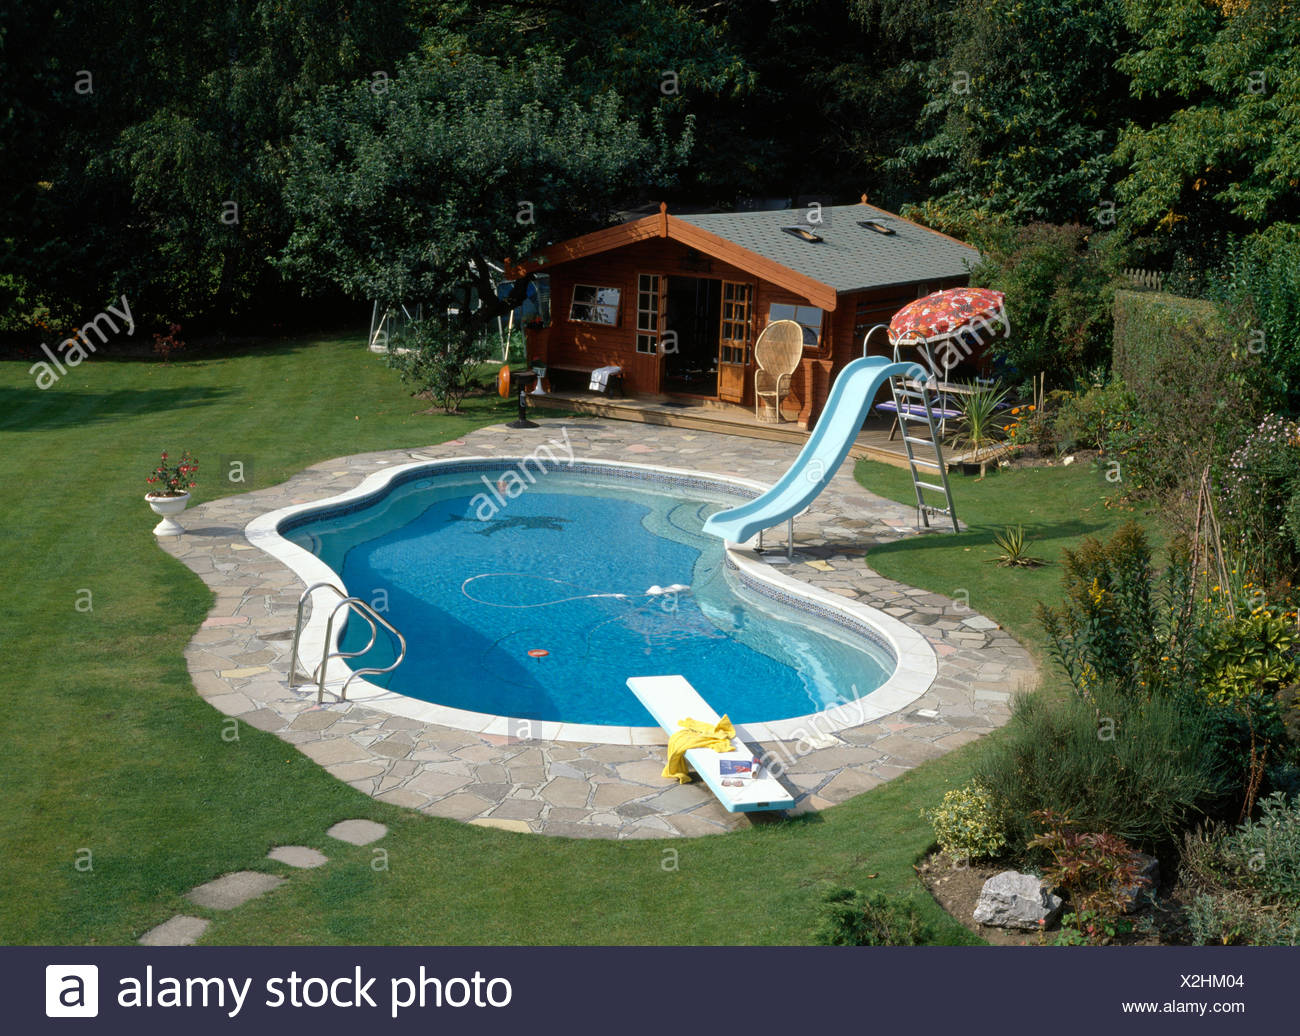 Birds-eye view of a kidney shaped swimming pool with a slide in ...